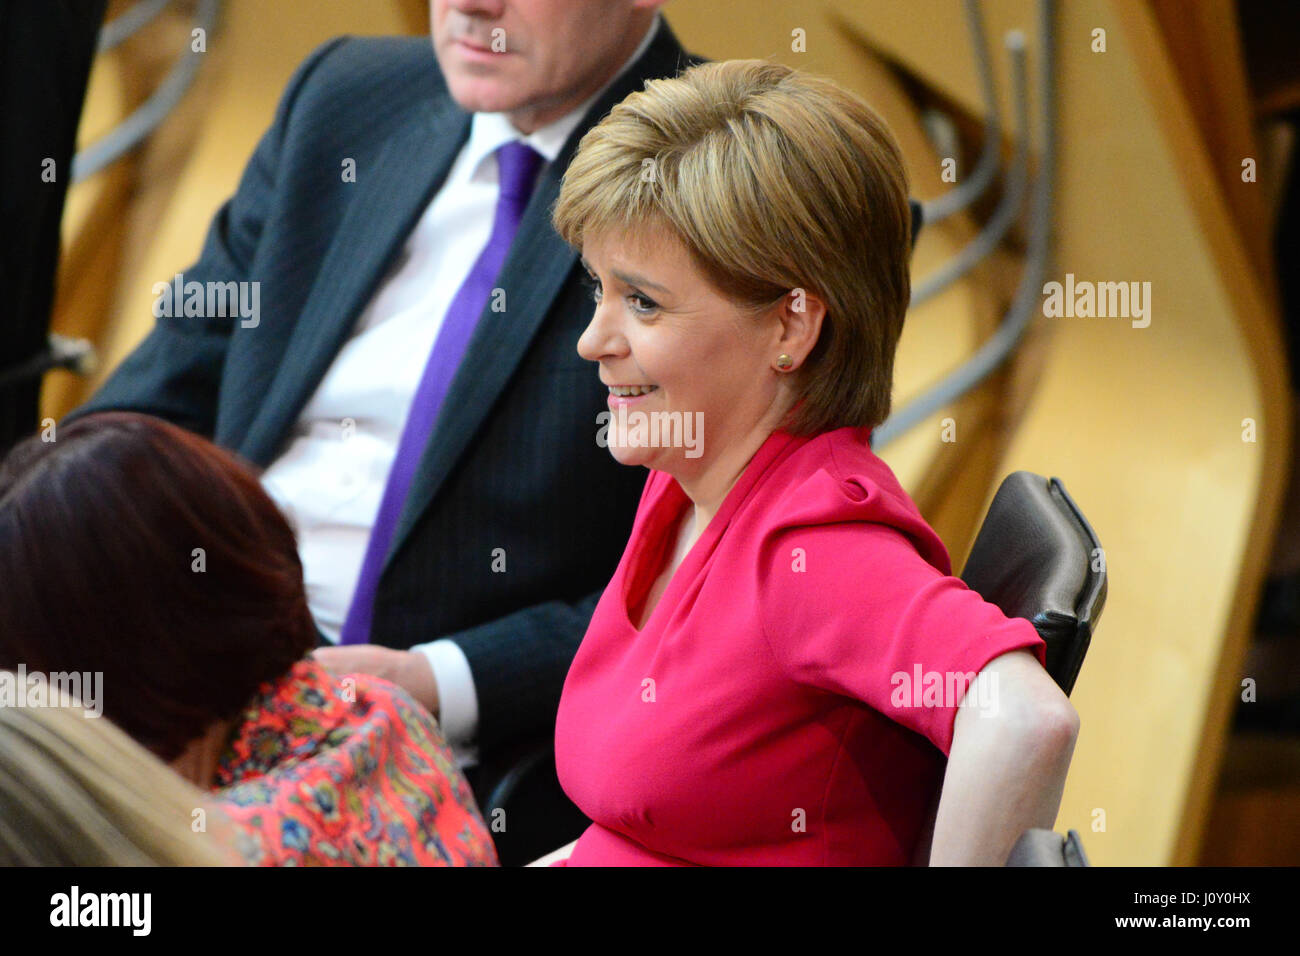 Scotland's First Minister Nicola Sturgeon during the debate on the Scottish Government's legislative programme - Stock Image